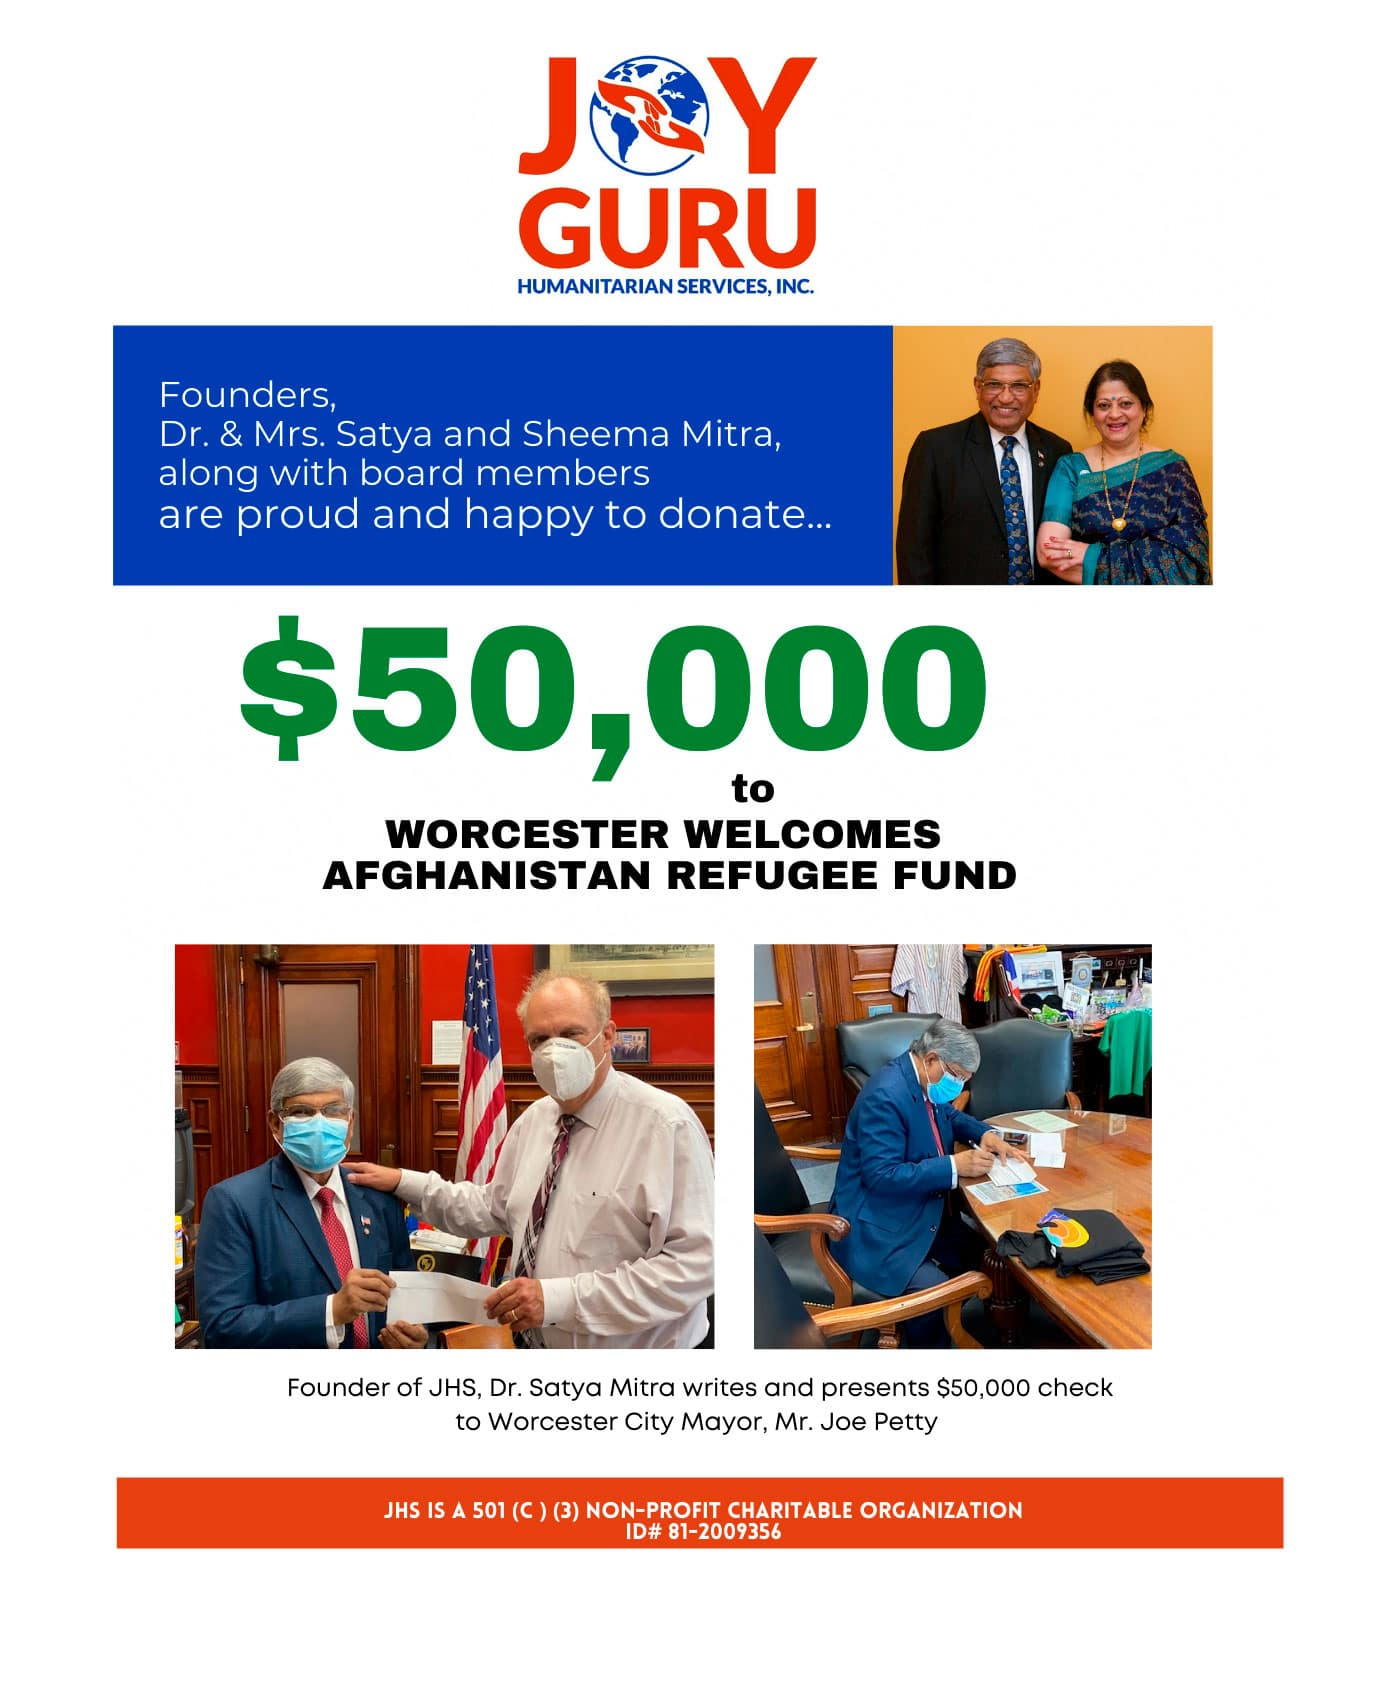 JOYGURU HUMANITARIAN SERVICES donated $50,000.00 to WORCESTER WELCOMES AFGHANISTAN REFUGEES FUND